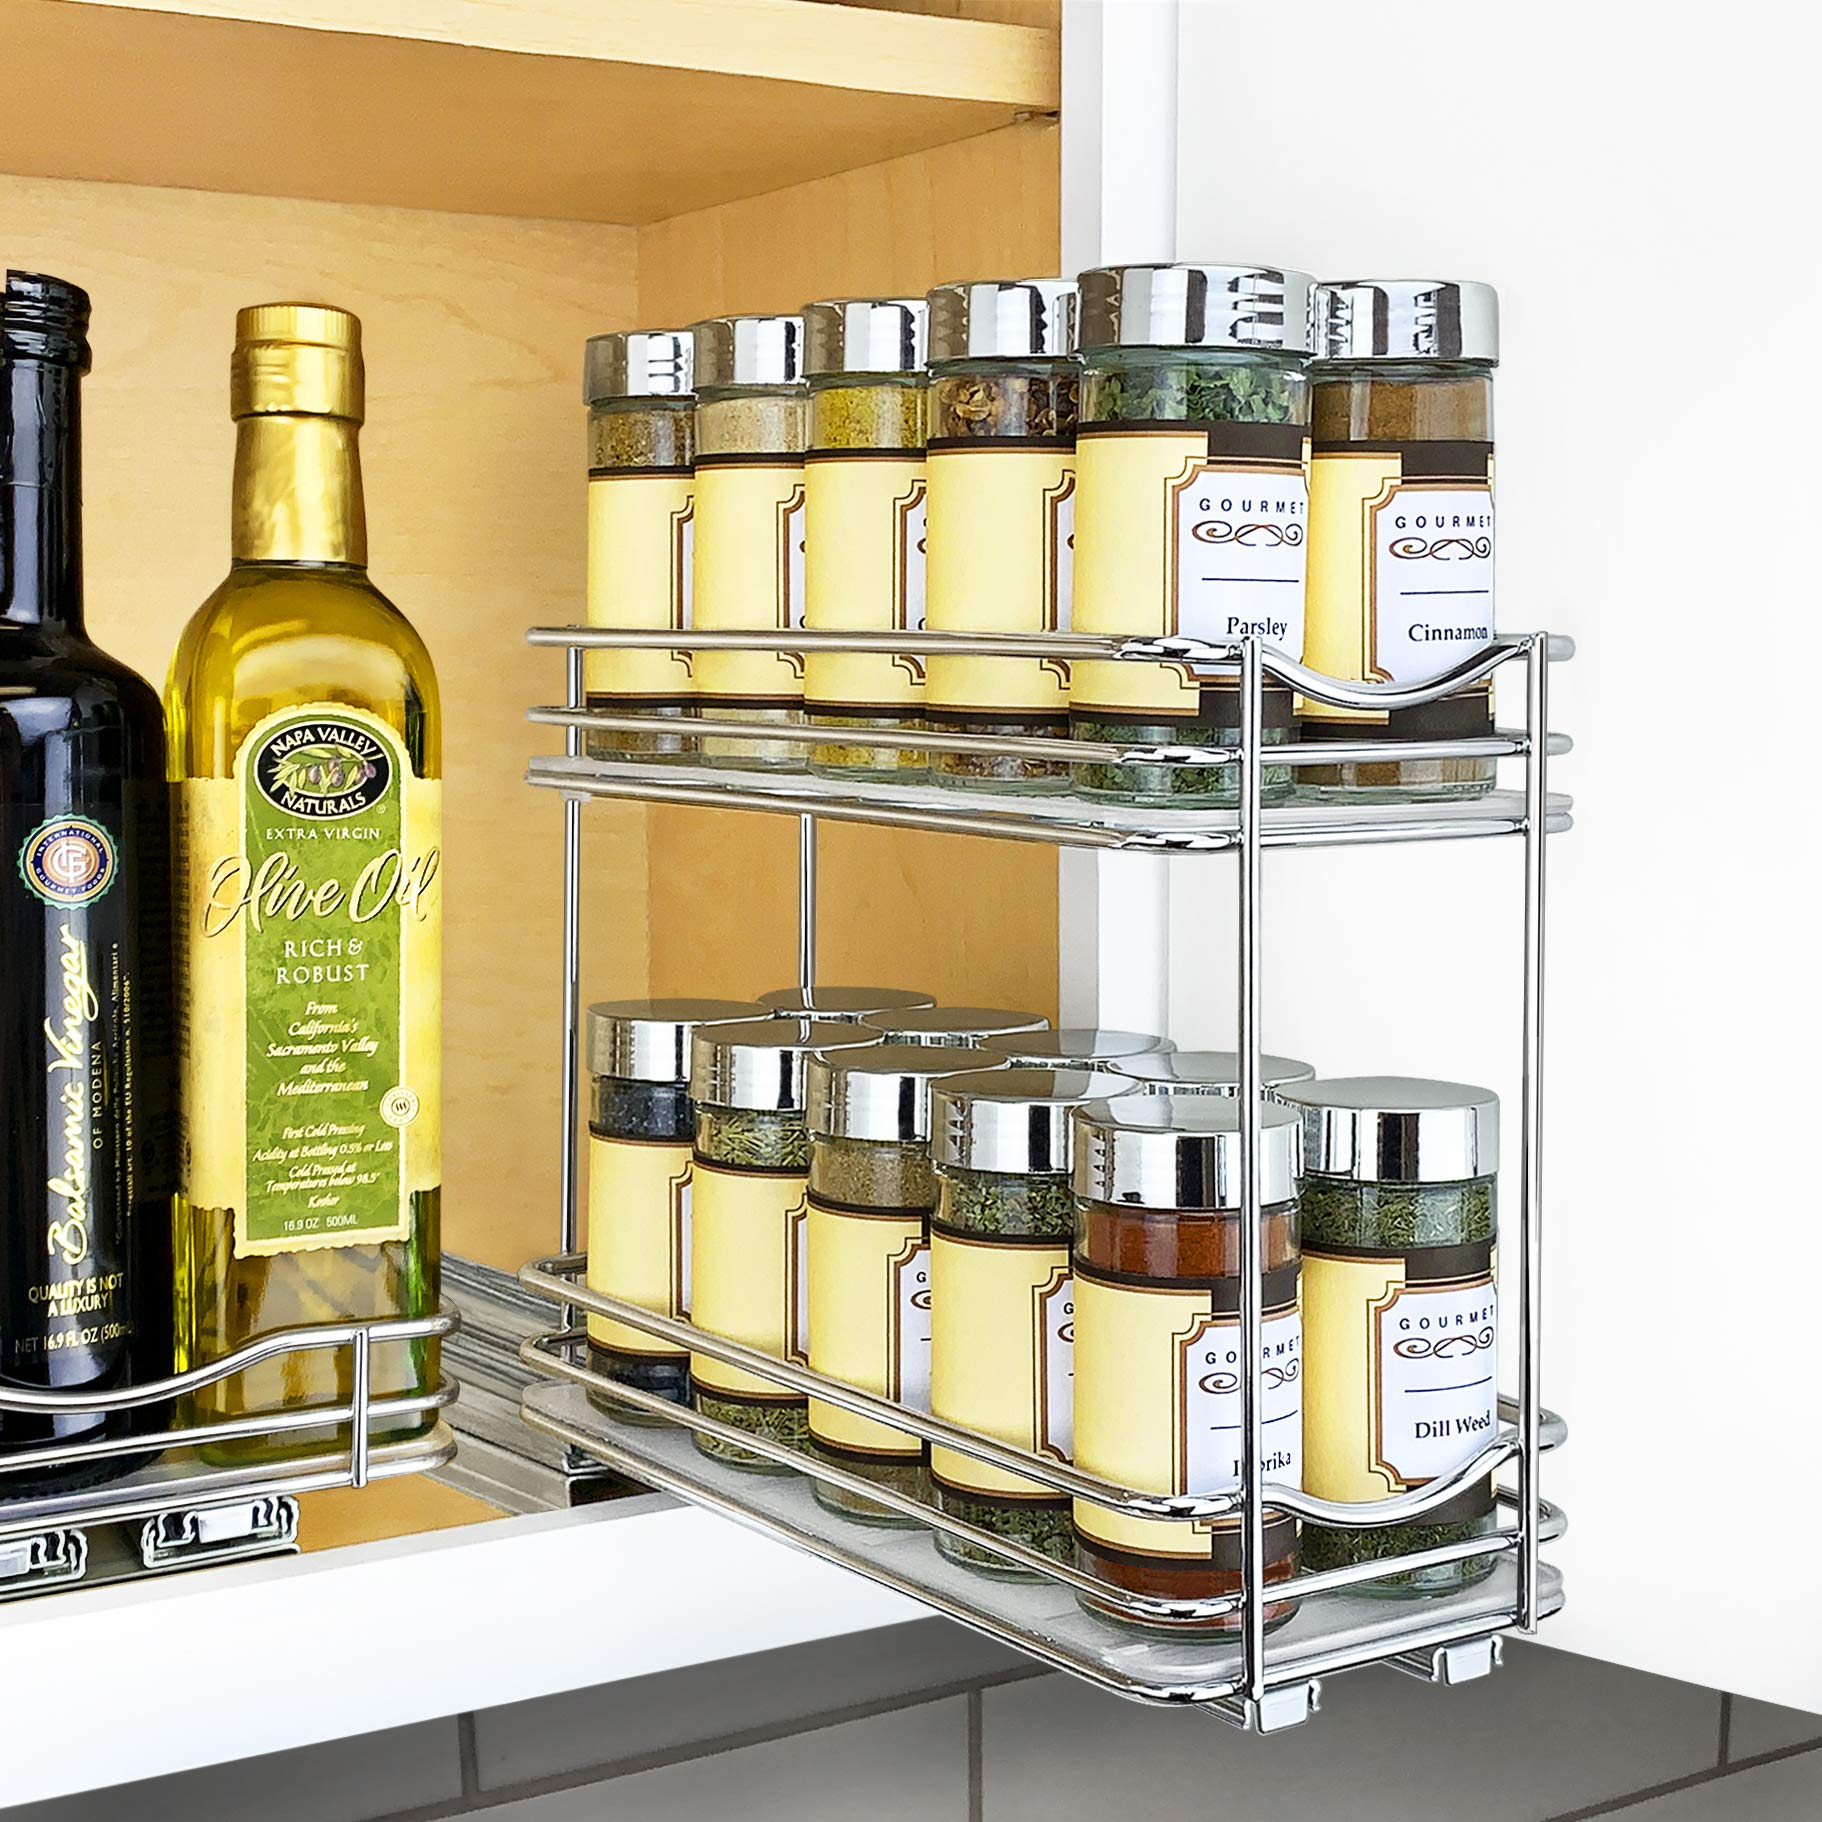 Lynk Professional 430422DS Slide Out Spice Rack Double Cabinet Organizer, 4'' Wide, Chrome by Lynk